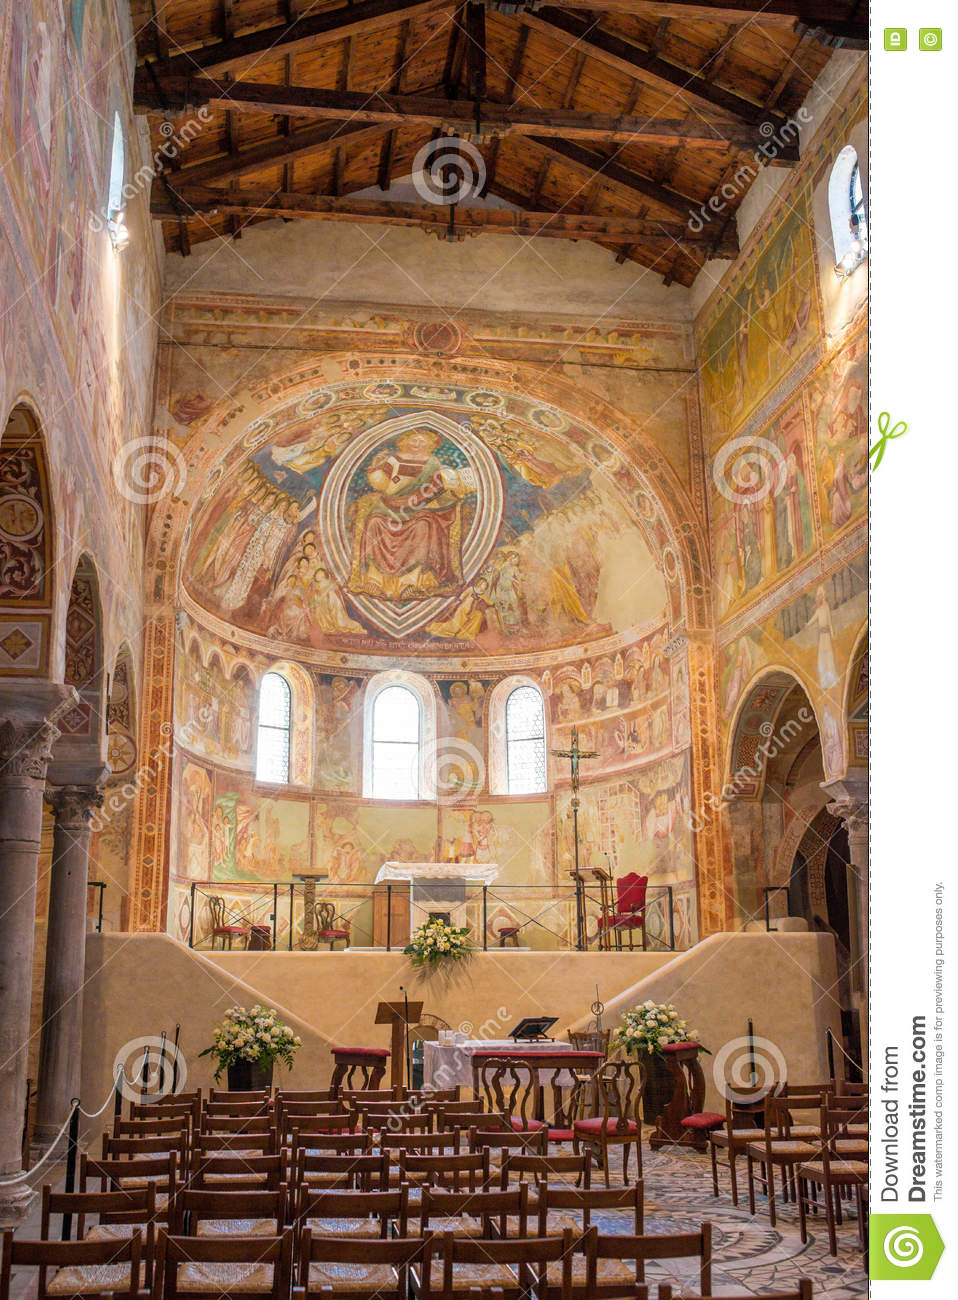 Frescoes medieval Cathedral of Chioggia, monuments, august 2016